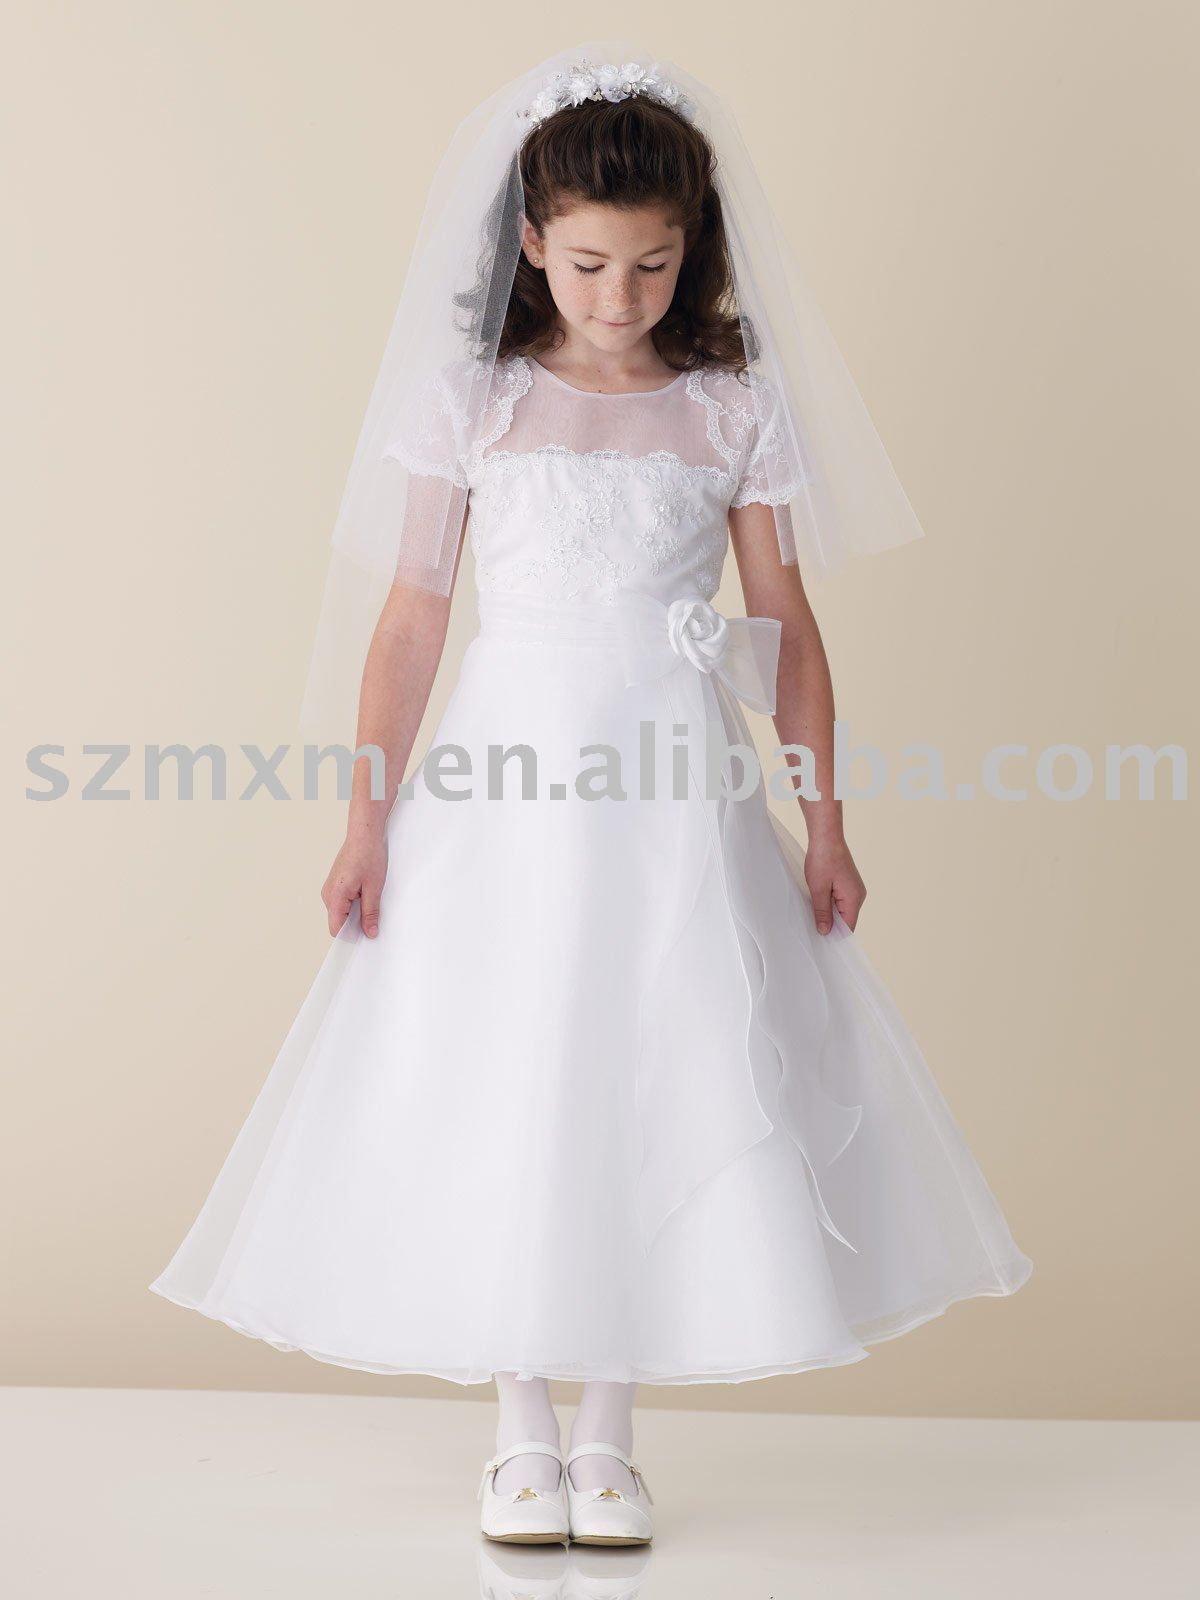 17 Best images about first communion dresses on Pinterest - Girls ...